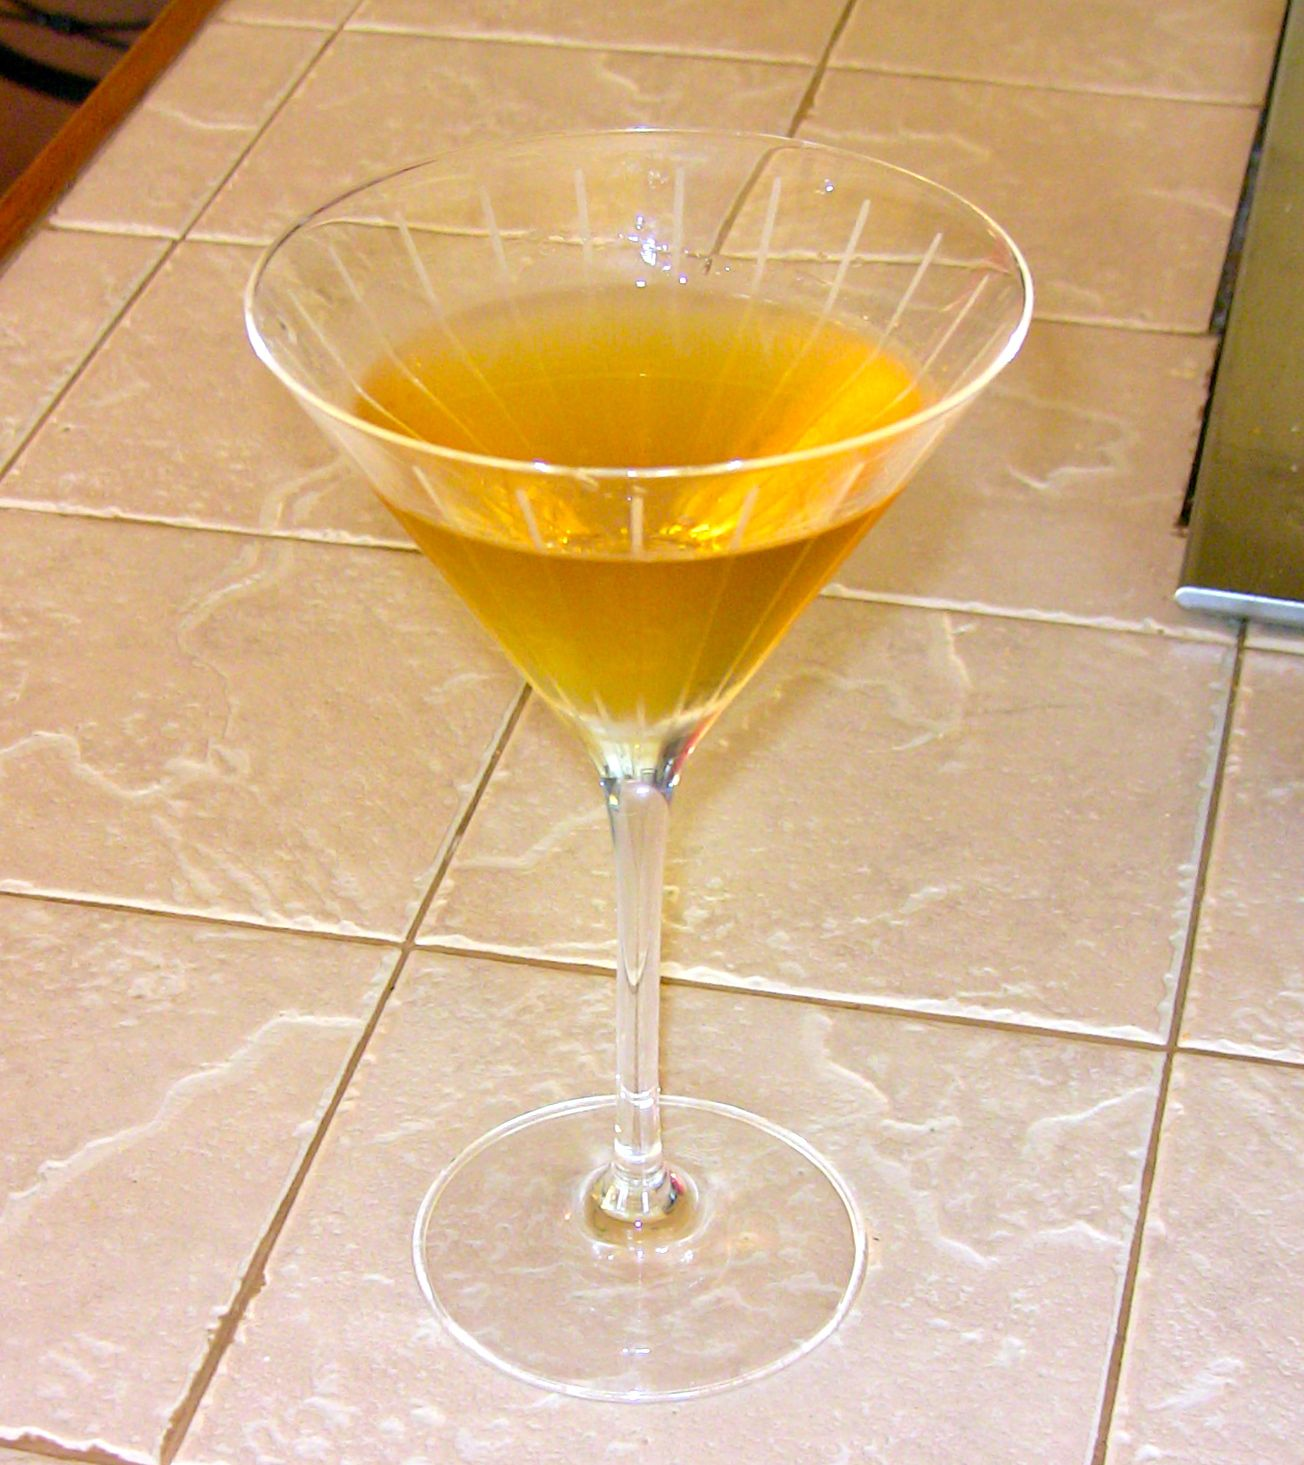 Golden Slipper Cocktail